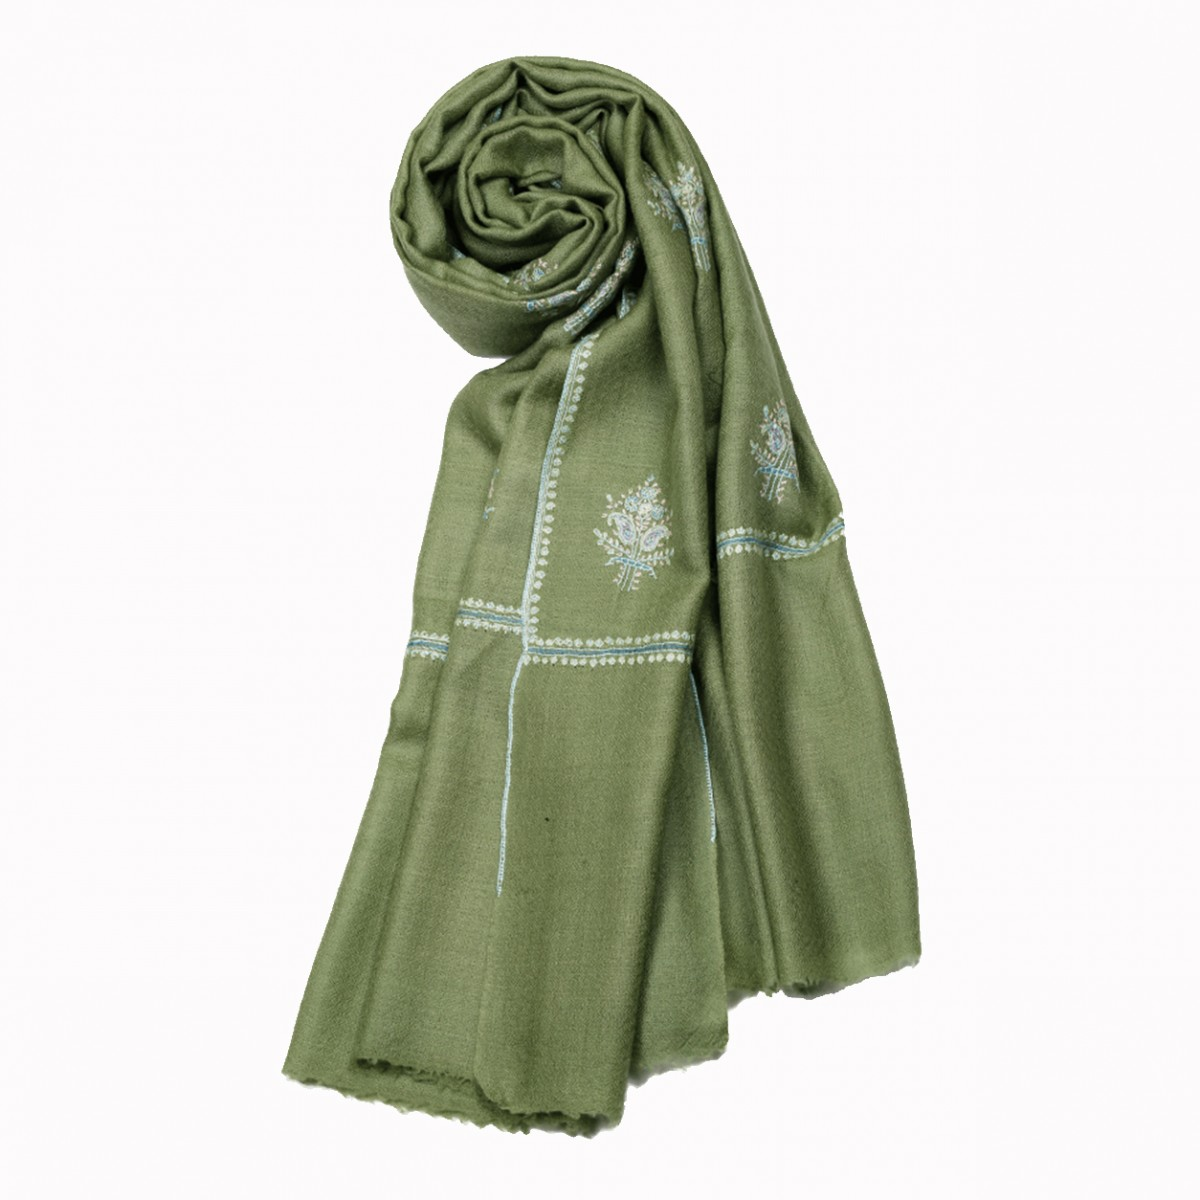 Embroidered Handloom Pashmina Stole - Laurel